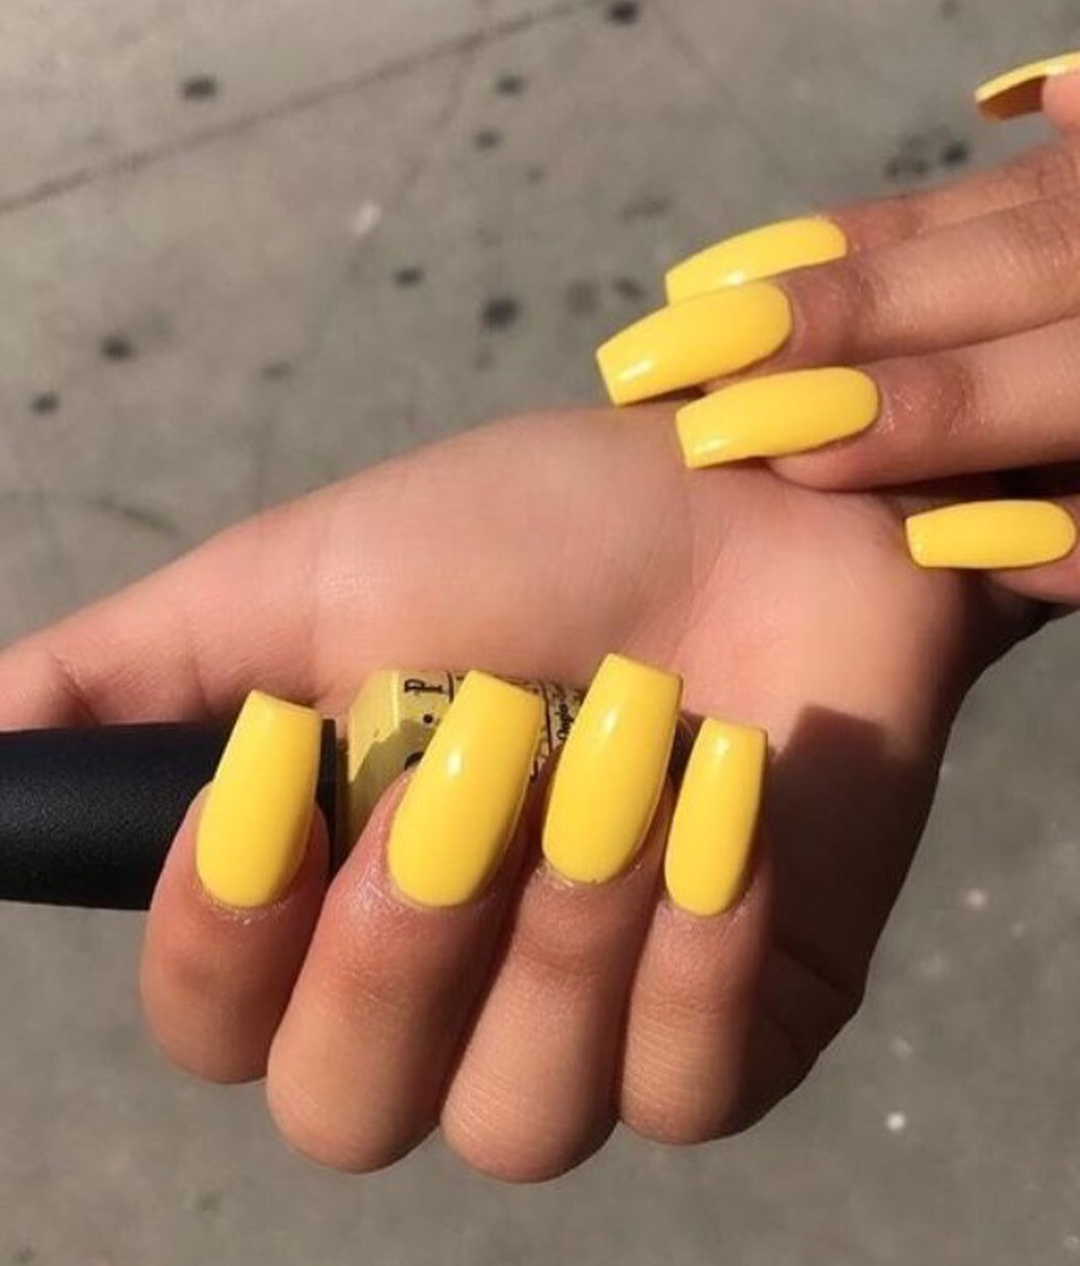 Exotic Birds OPI color on Yellow Acrylic Nails